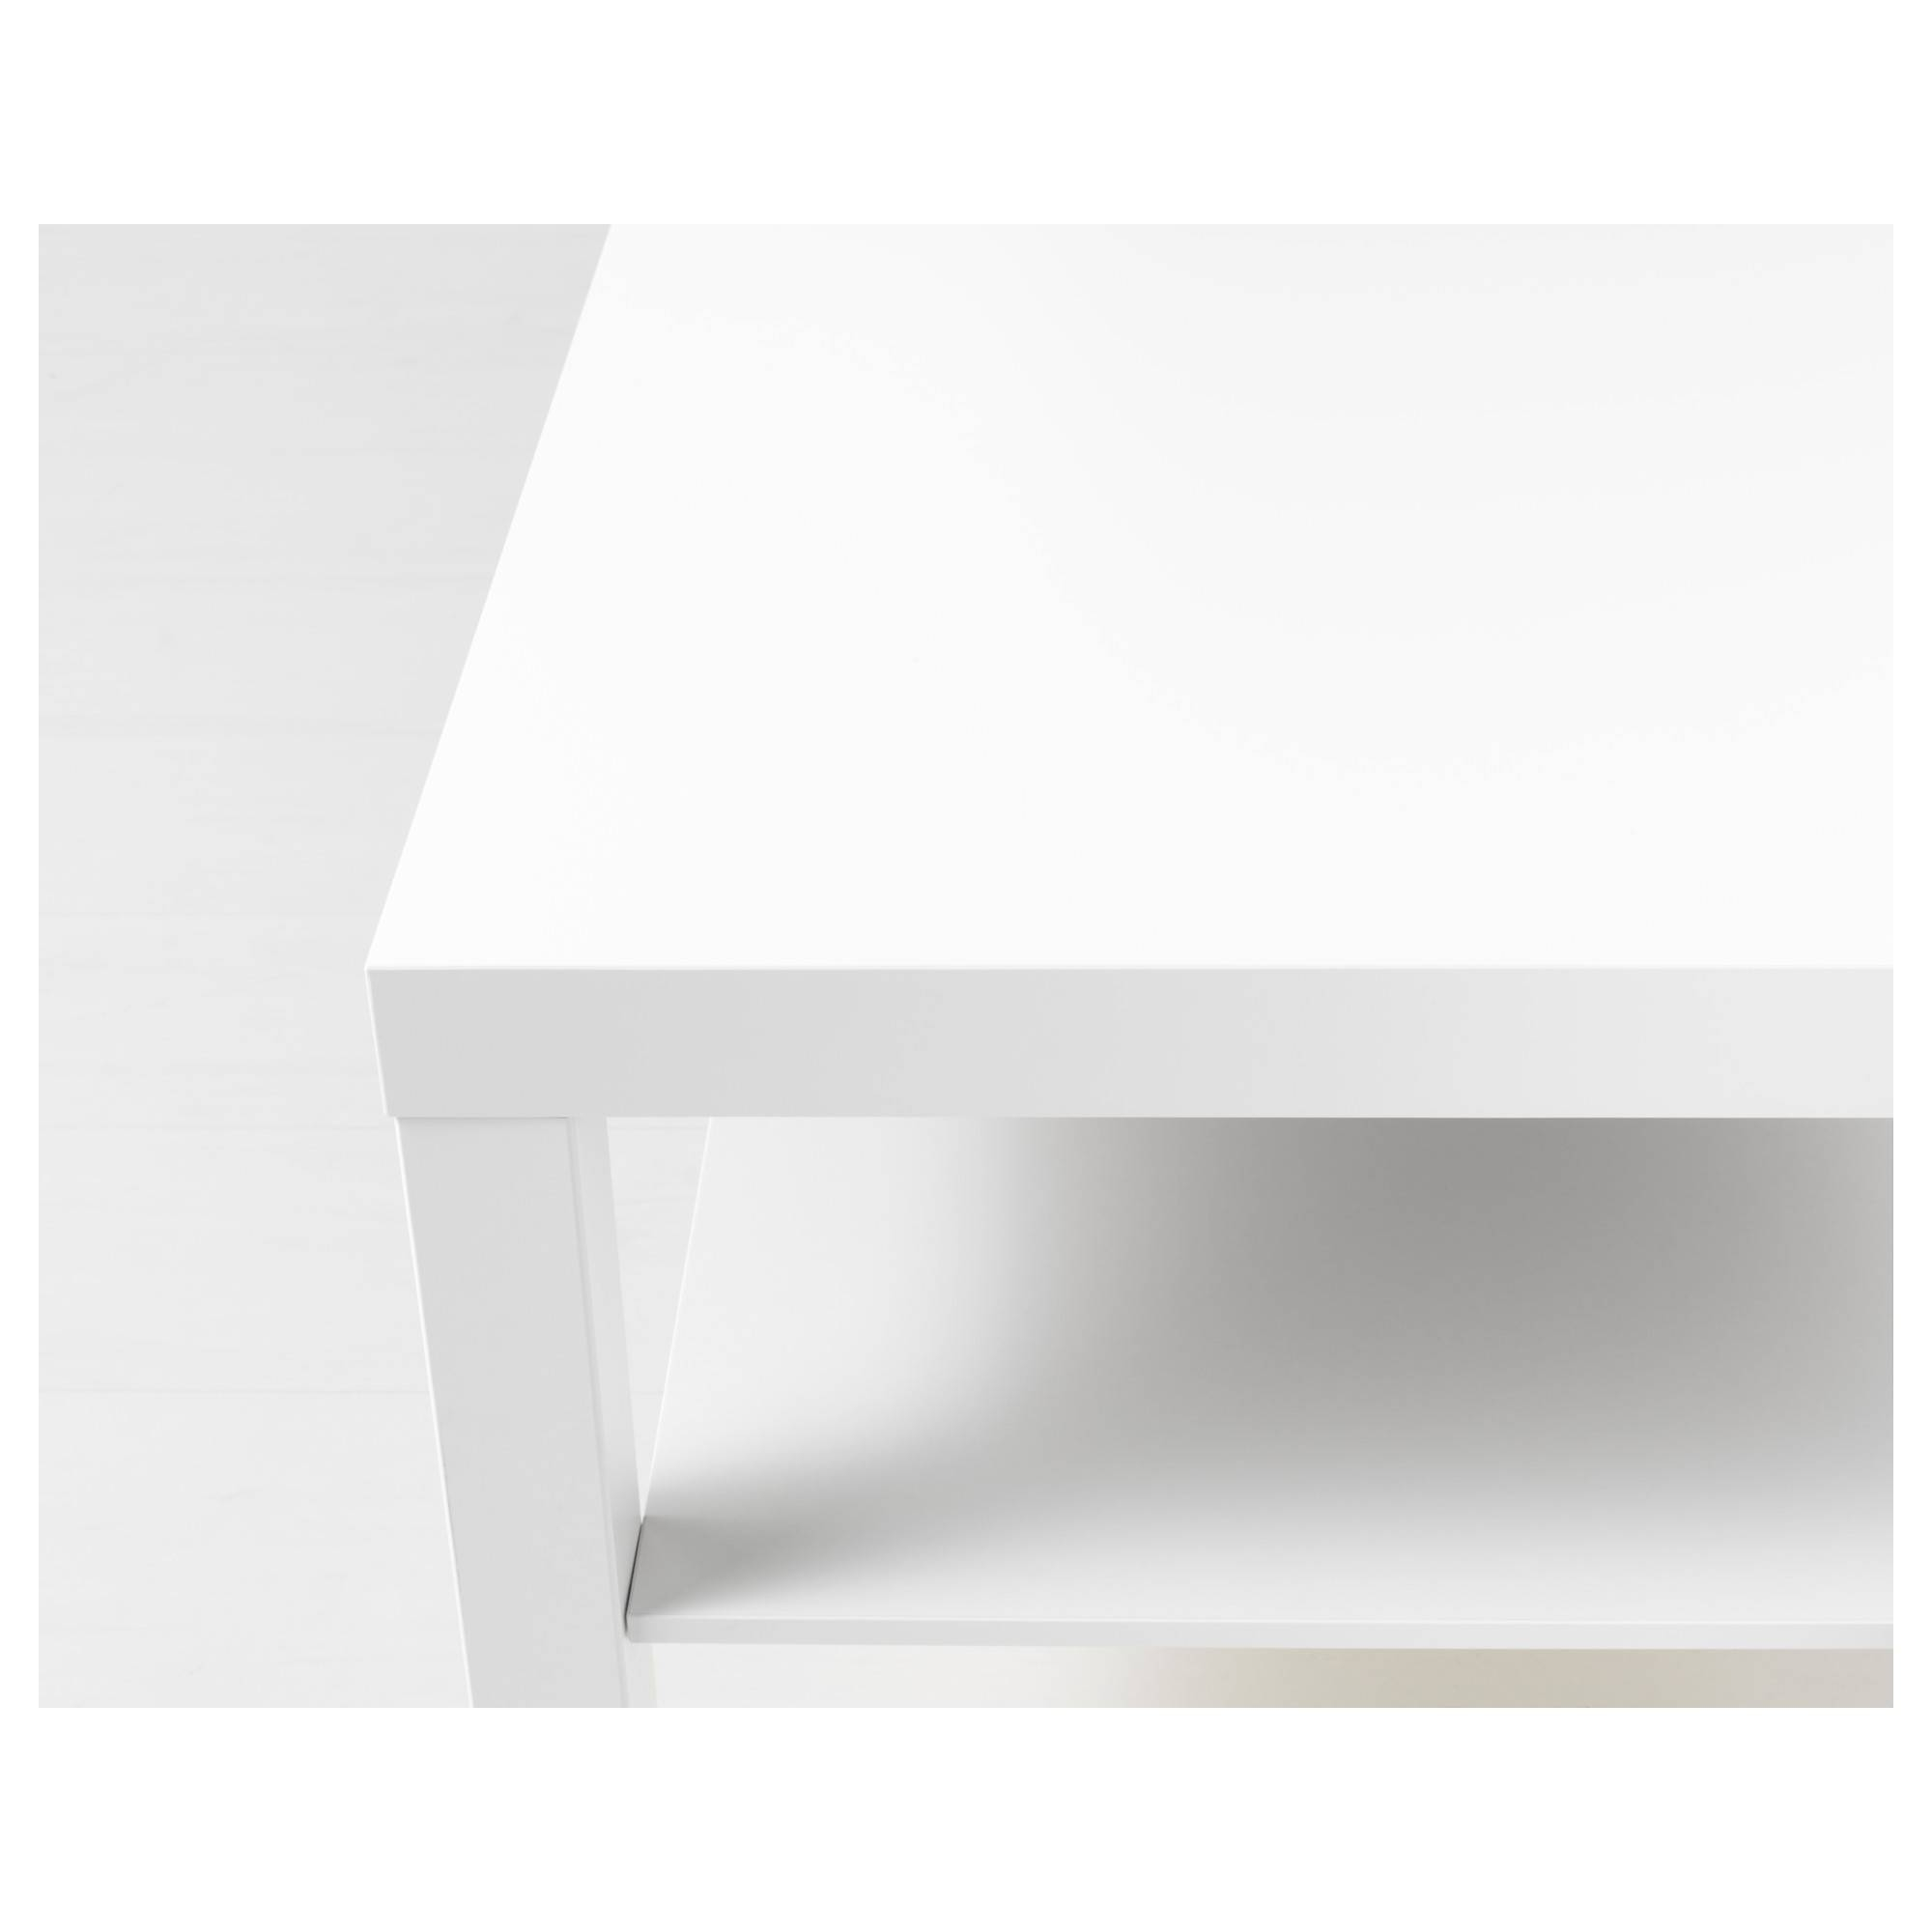 Displaying photos of large low white coffee tables view 6 of 30 lack coffee table white 35x22x18 ikea low round 0258000 pe4019 with large low white coffee tables geotapseo Gallery